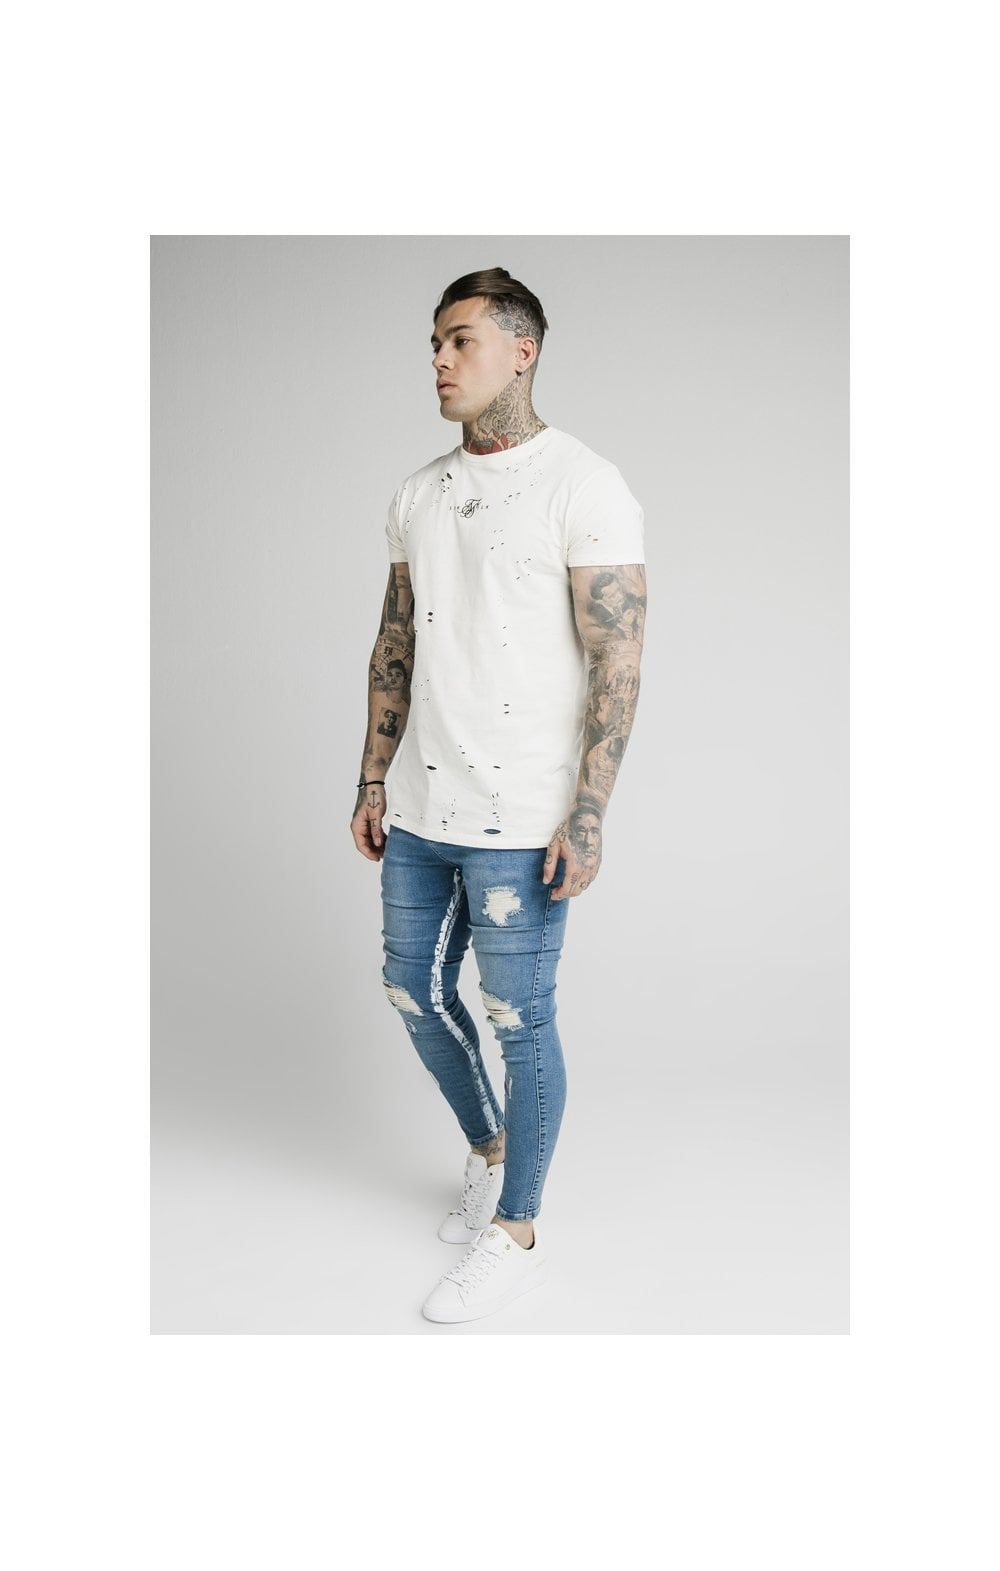 Load image into Gallery viewer, SikSilk Skinny Distressed Paint Stripe Denims - Midstone & White (3)